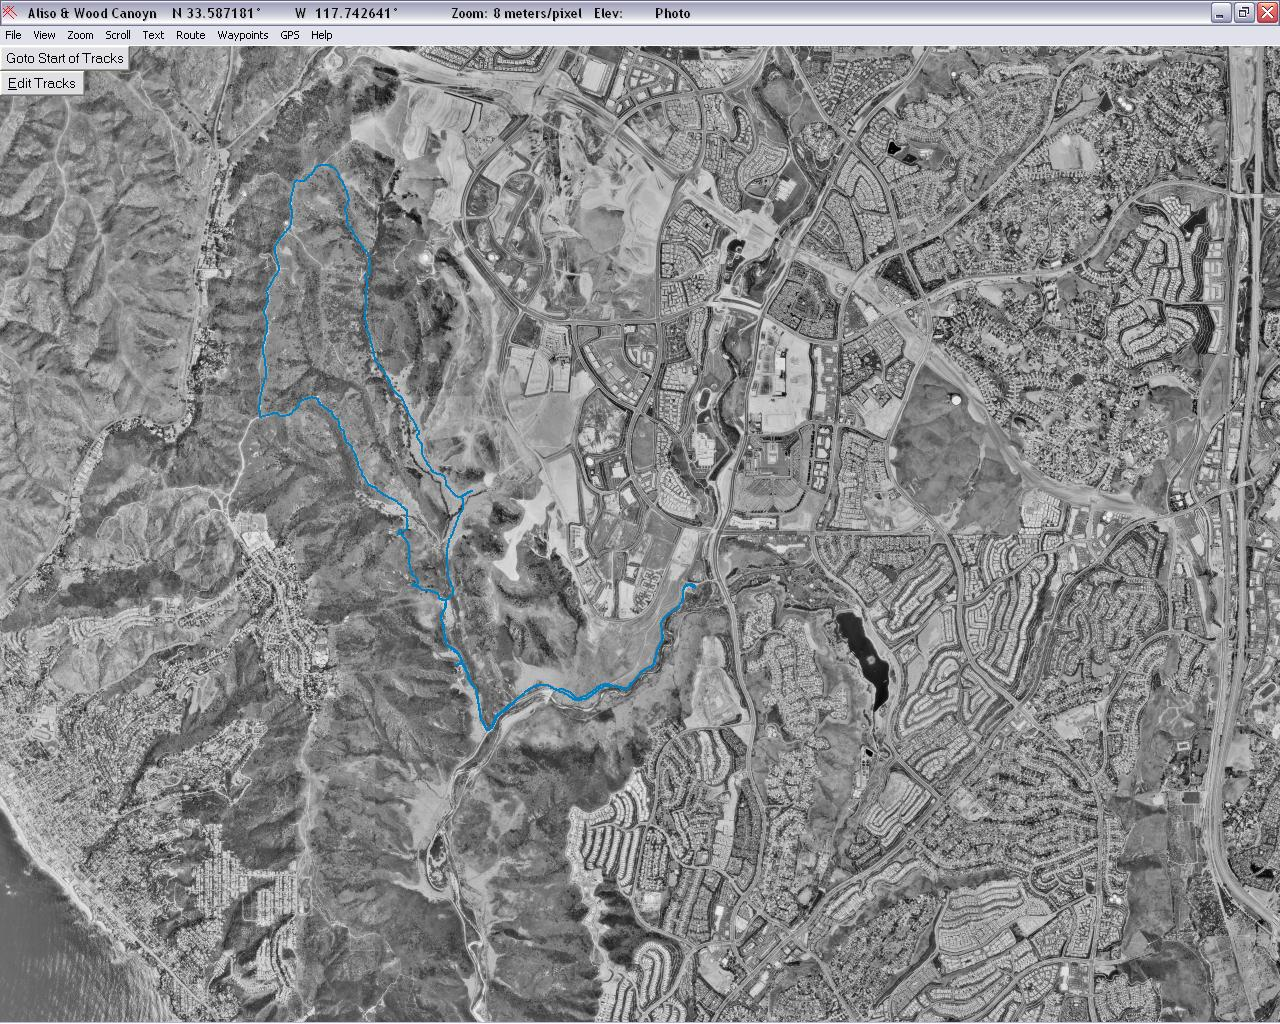 Current Image is BFelsted/Aliso_Crieek_Trail_Sat.JPG Clicking here will display Aliso_Crieek_Trail_topo_3D.JPG